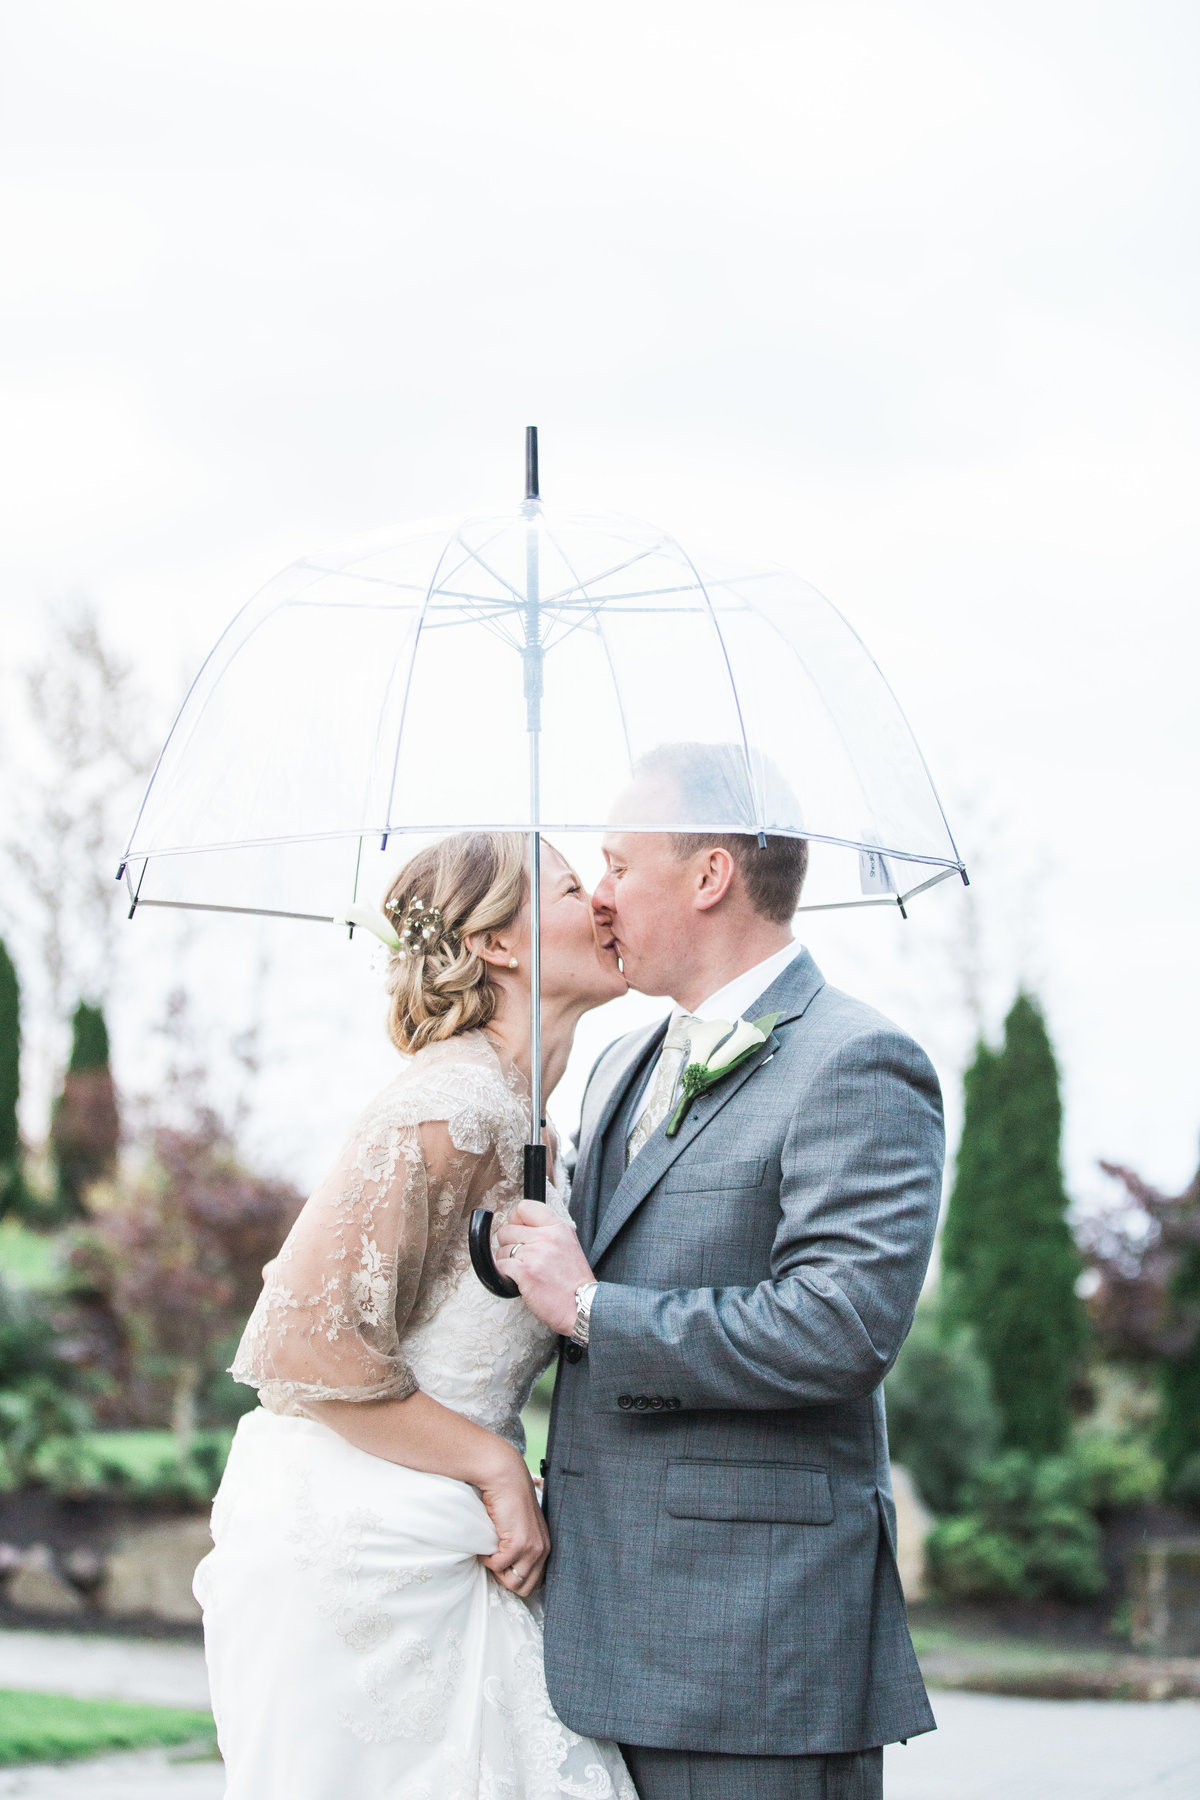 Eva-Rieb-Photography_Casey-Craig-Dairyland-Wedding-440